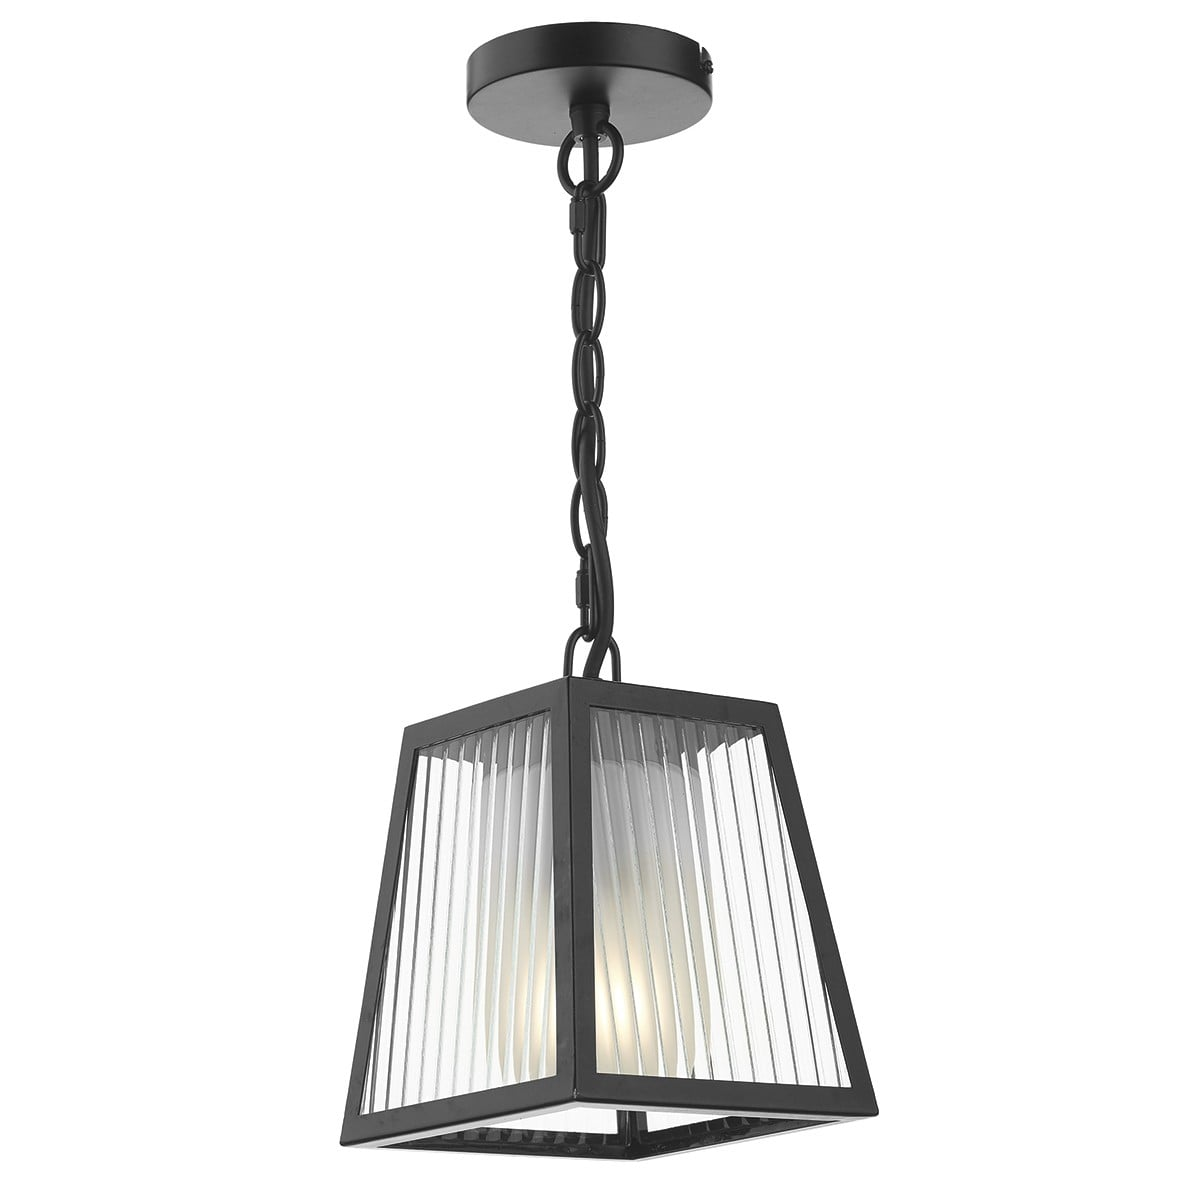 Dar LIM0122 Limassol Outdoor 1 Light Pendant in Black